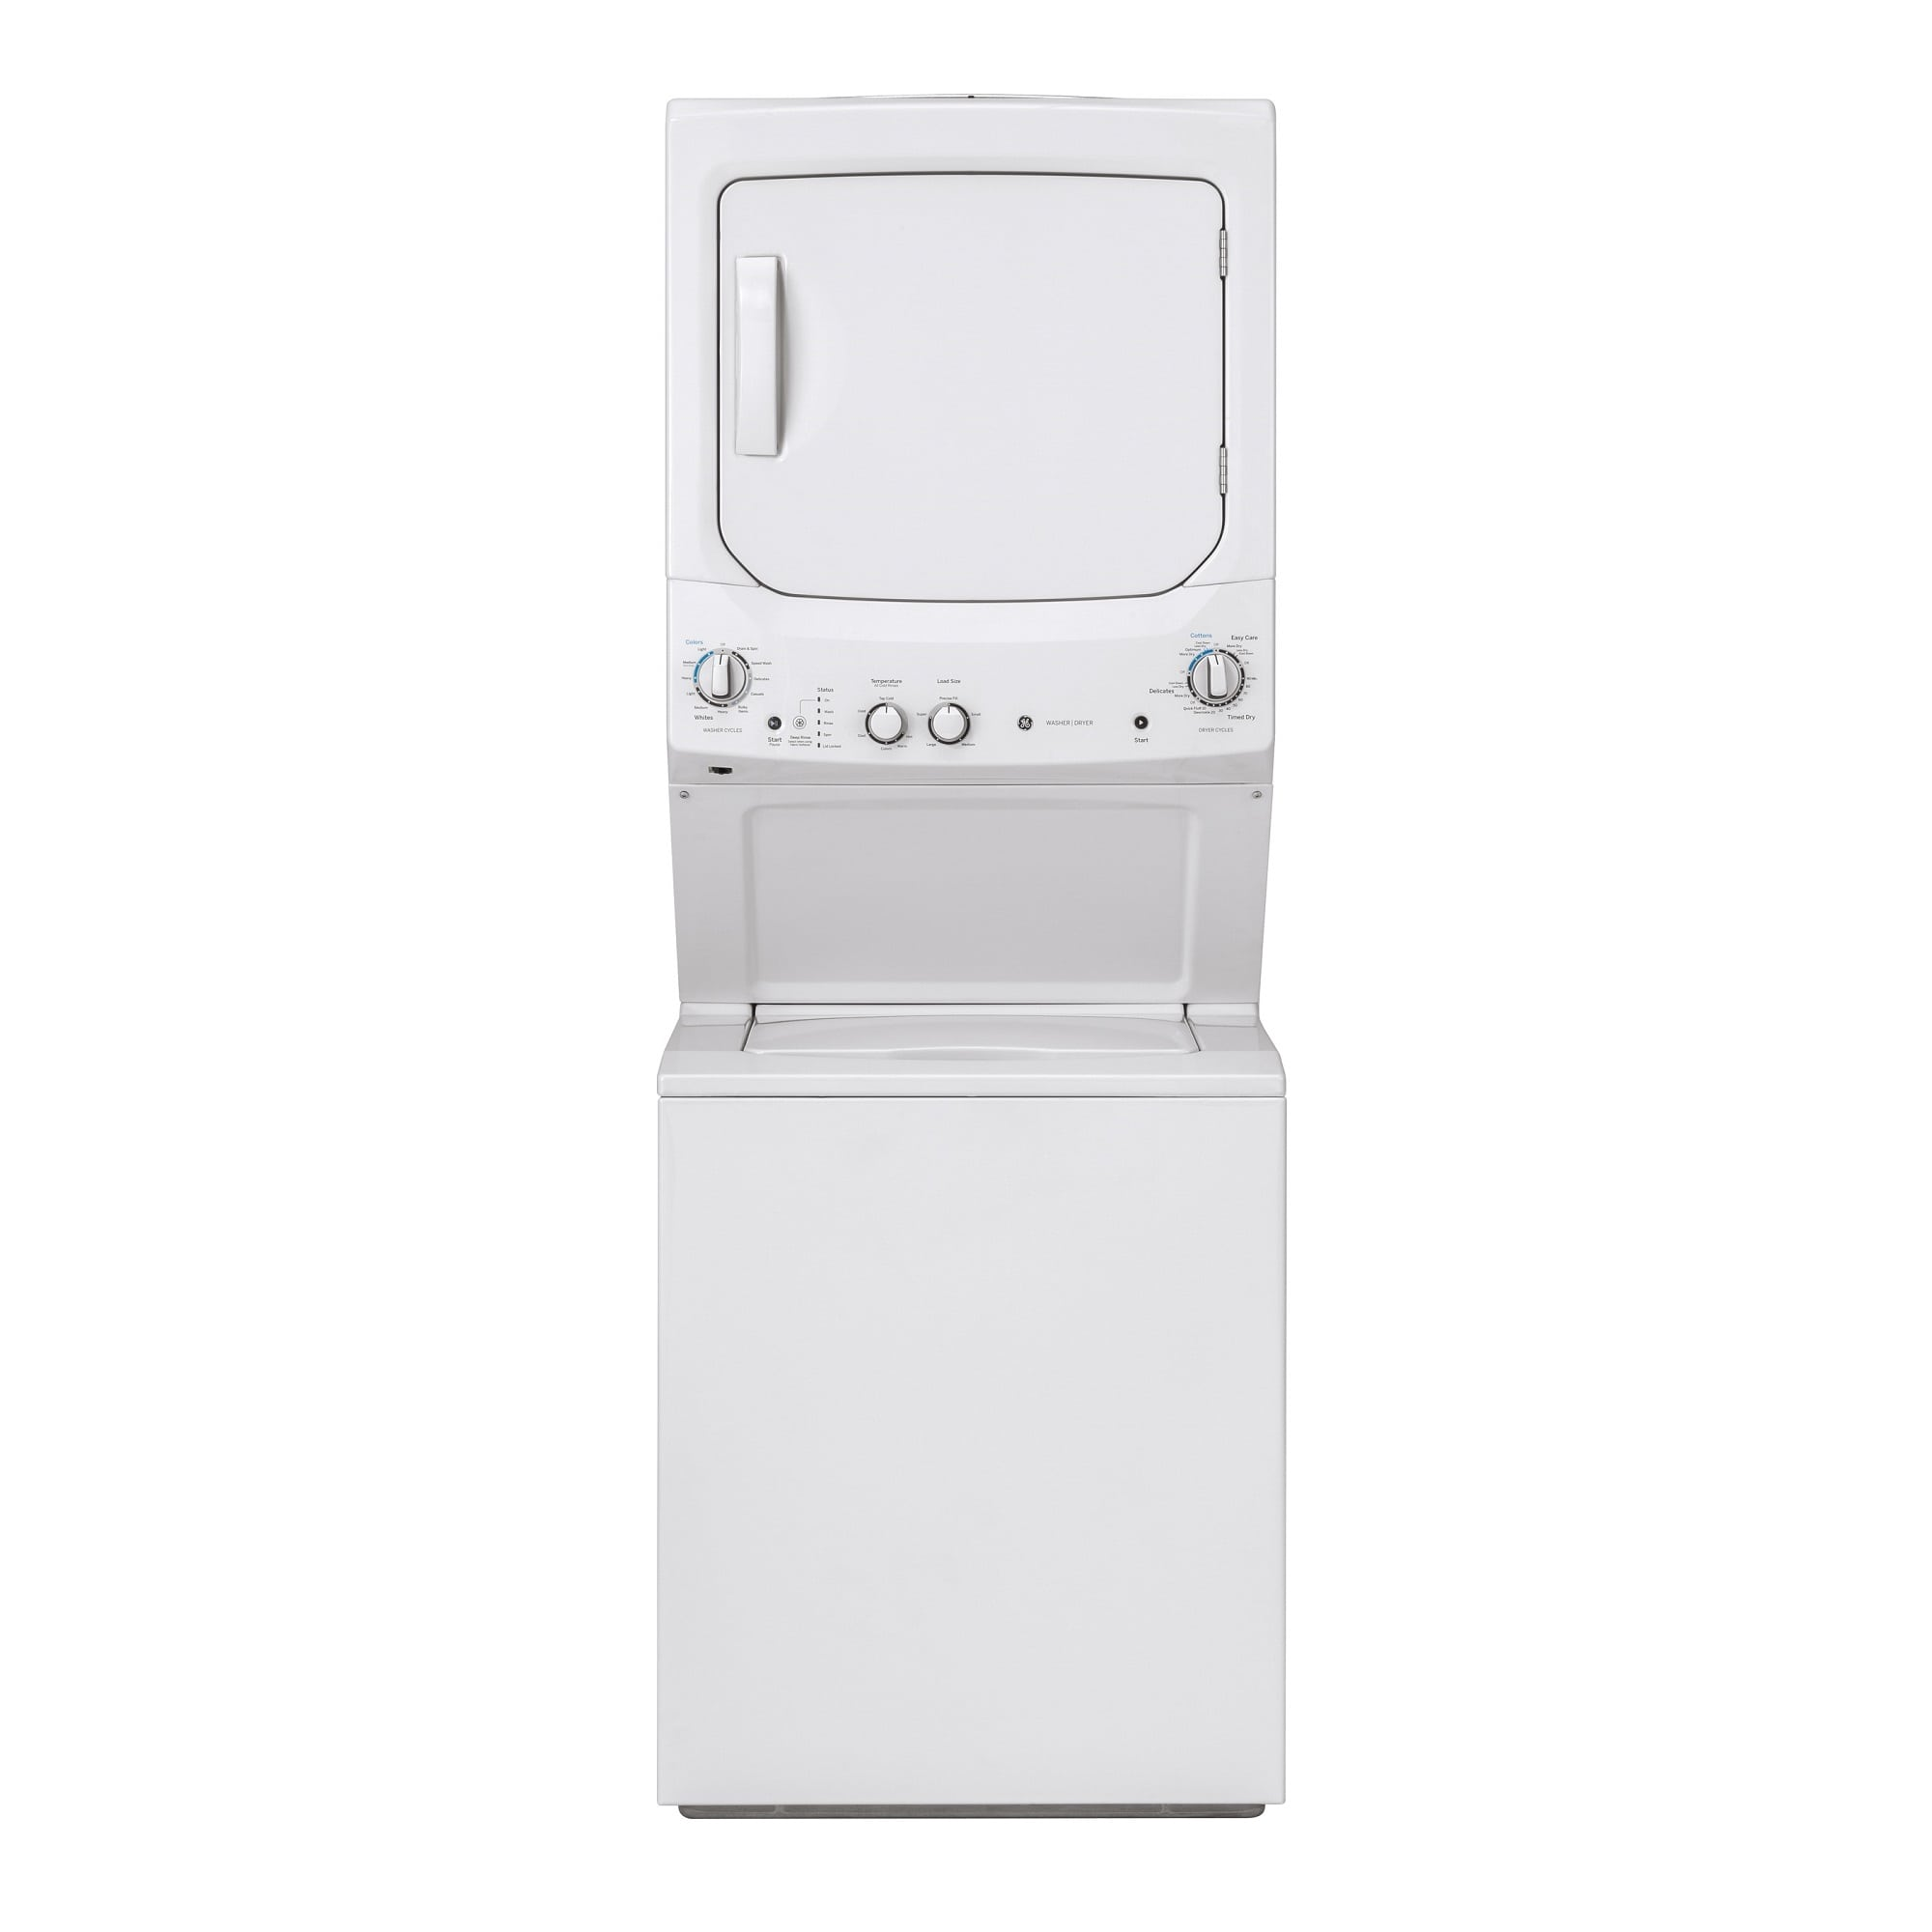 """27"""" Spacemaker® 3.8 cu. ft. Top Load Washer & 5.9 cu. ft. Electric Dryer"""